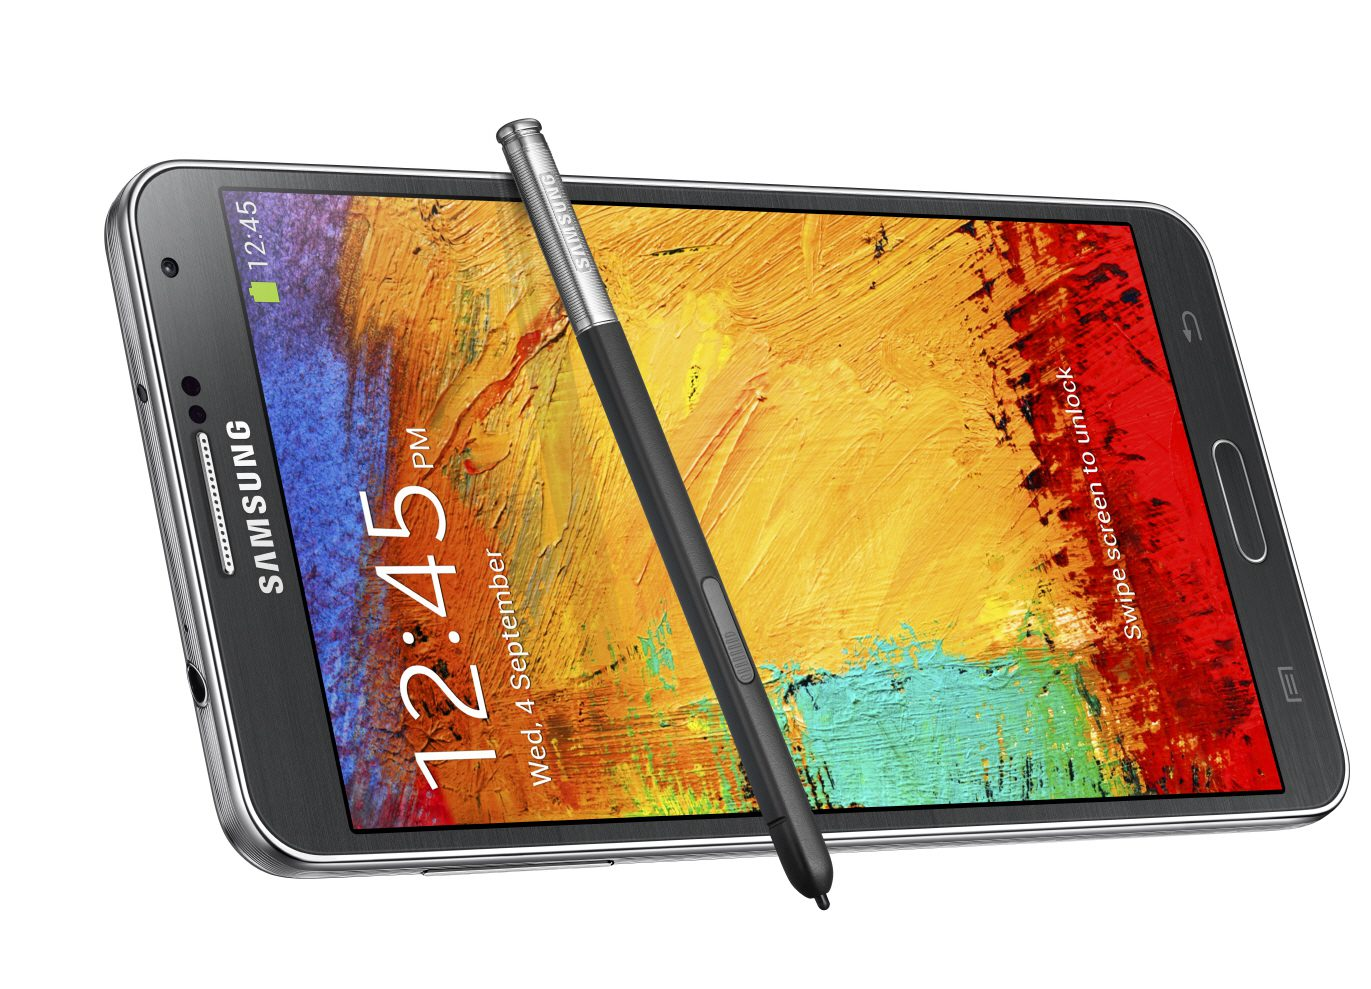 Galxy Note3_025_front dynamic with pen2_Jet Black